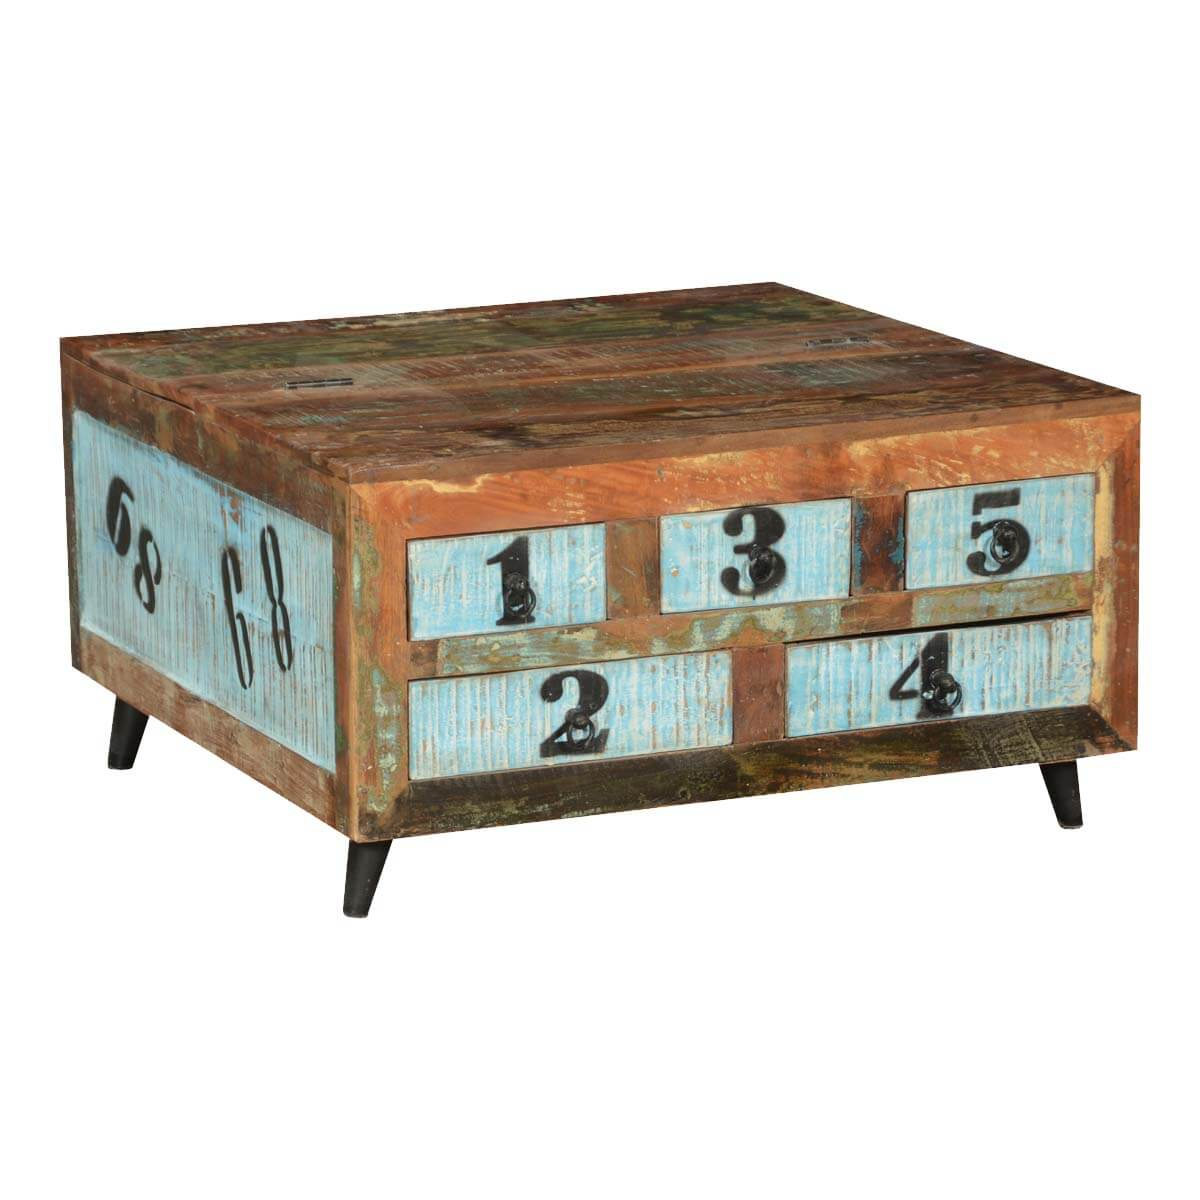 Elsmere Reclaimed Wood Standing 5 Drawer Square Coffee Table Chest